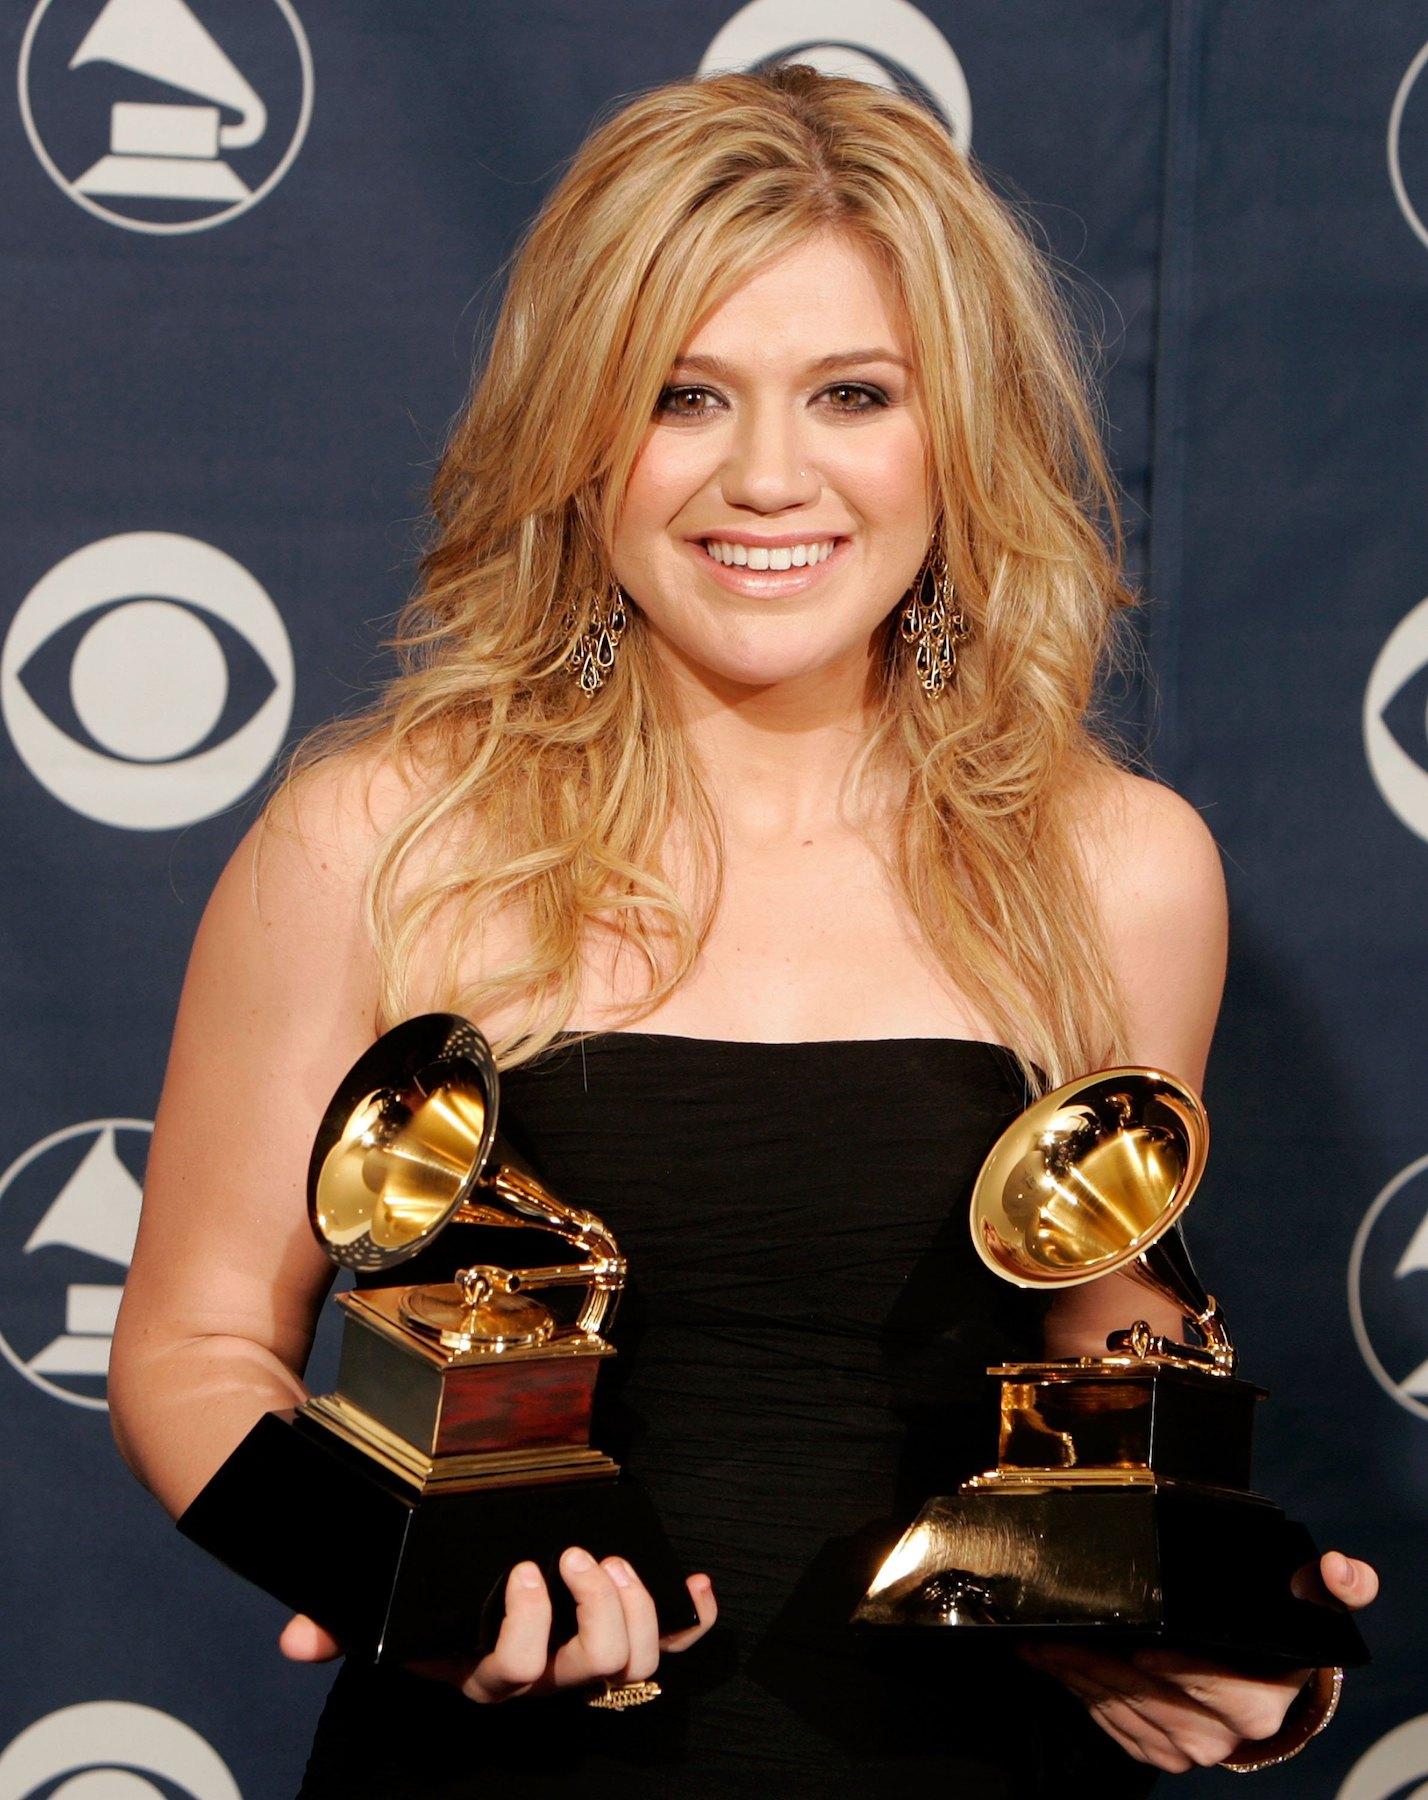 Kelly Clarkson holding two Grammy awards